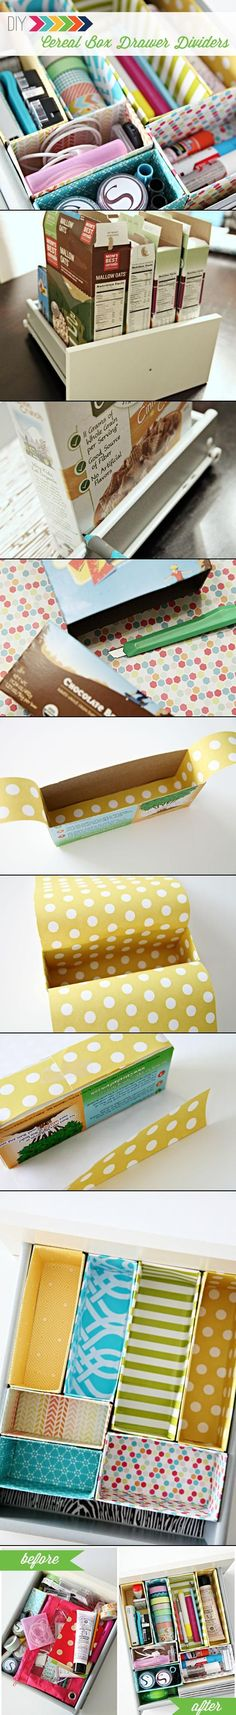 DIY Cereal Box Drawe